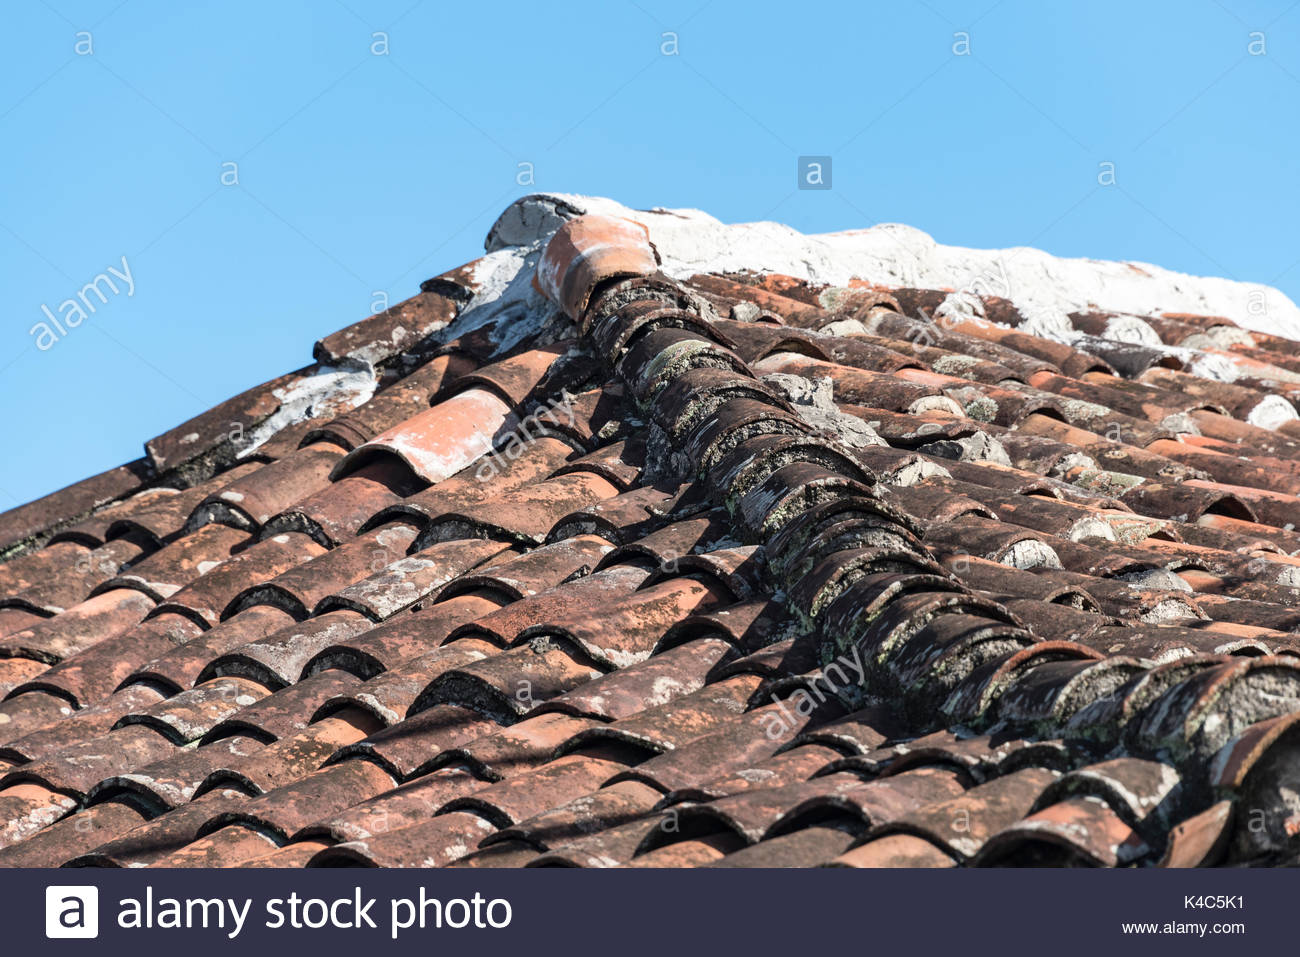 Ceramic terracotta tiles laid on a slanting roof the slightly ceramic terracotta tiles laid on a slanting roof the slightly raised center row blackened more than others dailygadgetfo Image collections